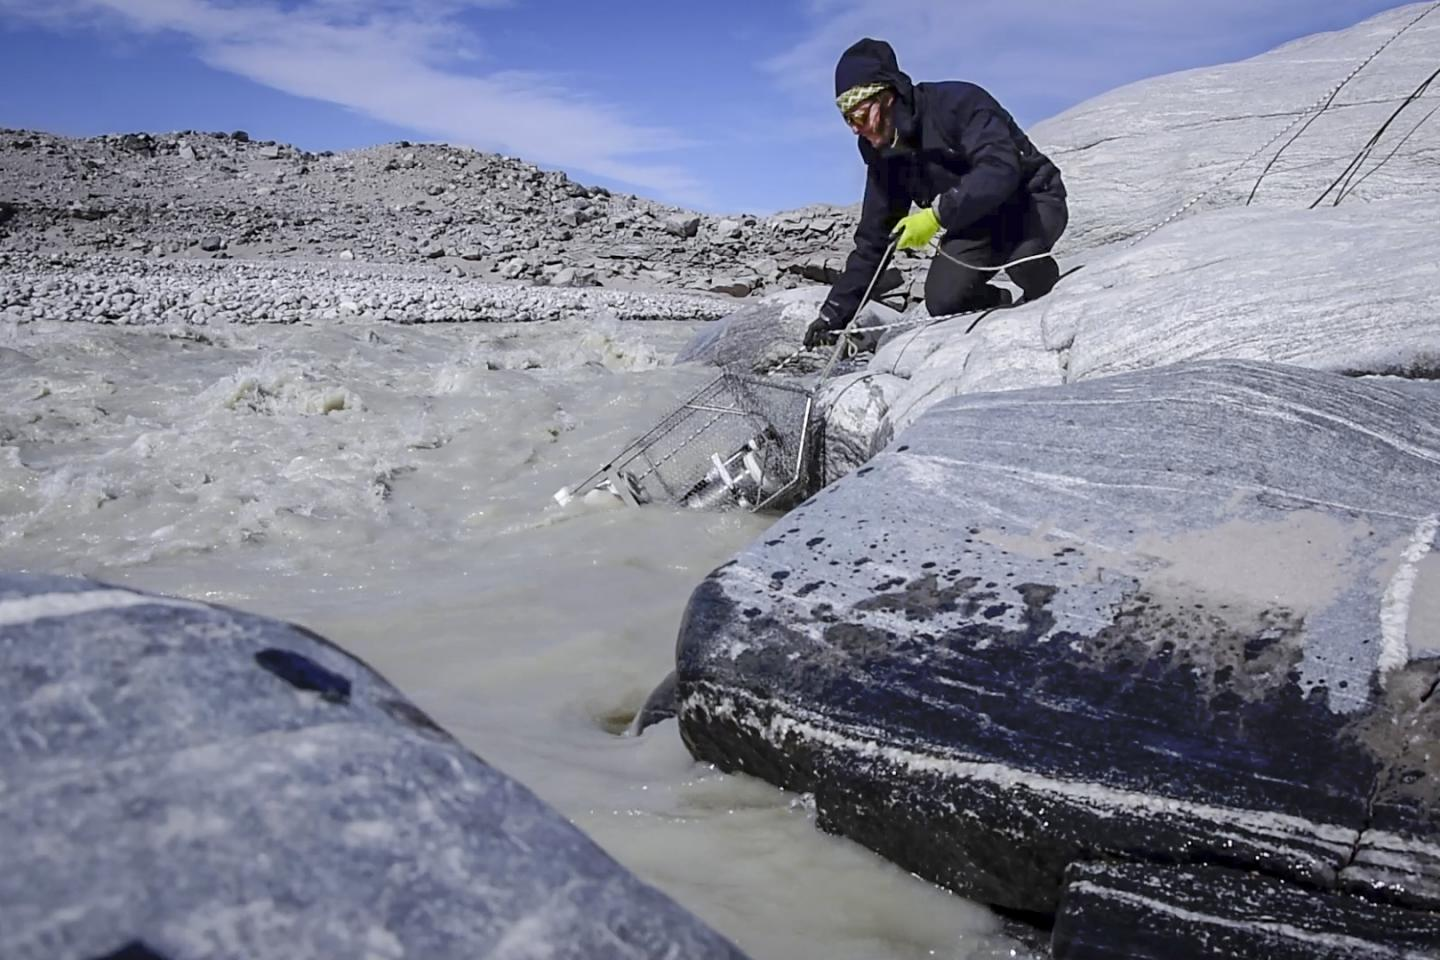 This is Guillaume Lamarche-Gagnon deploying the methane sensor that was used in the study into the proglacial river that drains the Greenland Glacier. / Credit: Marie Bulinova